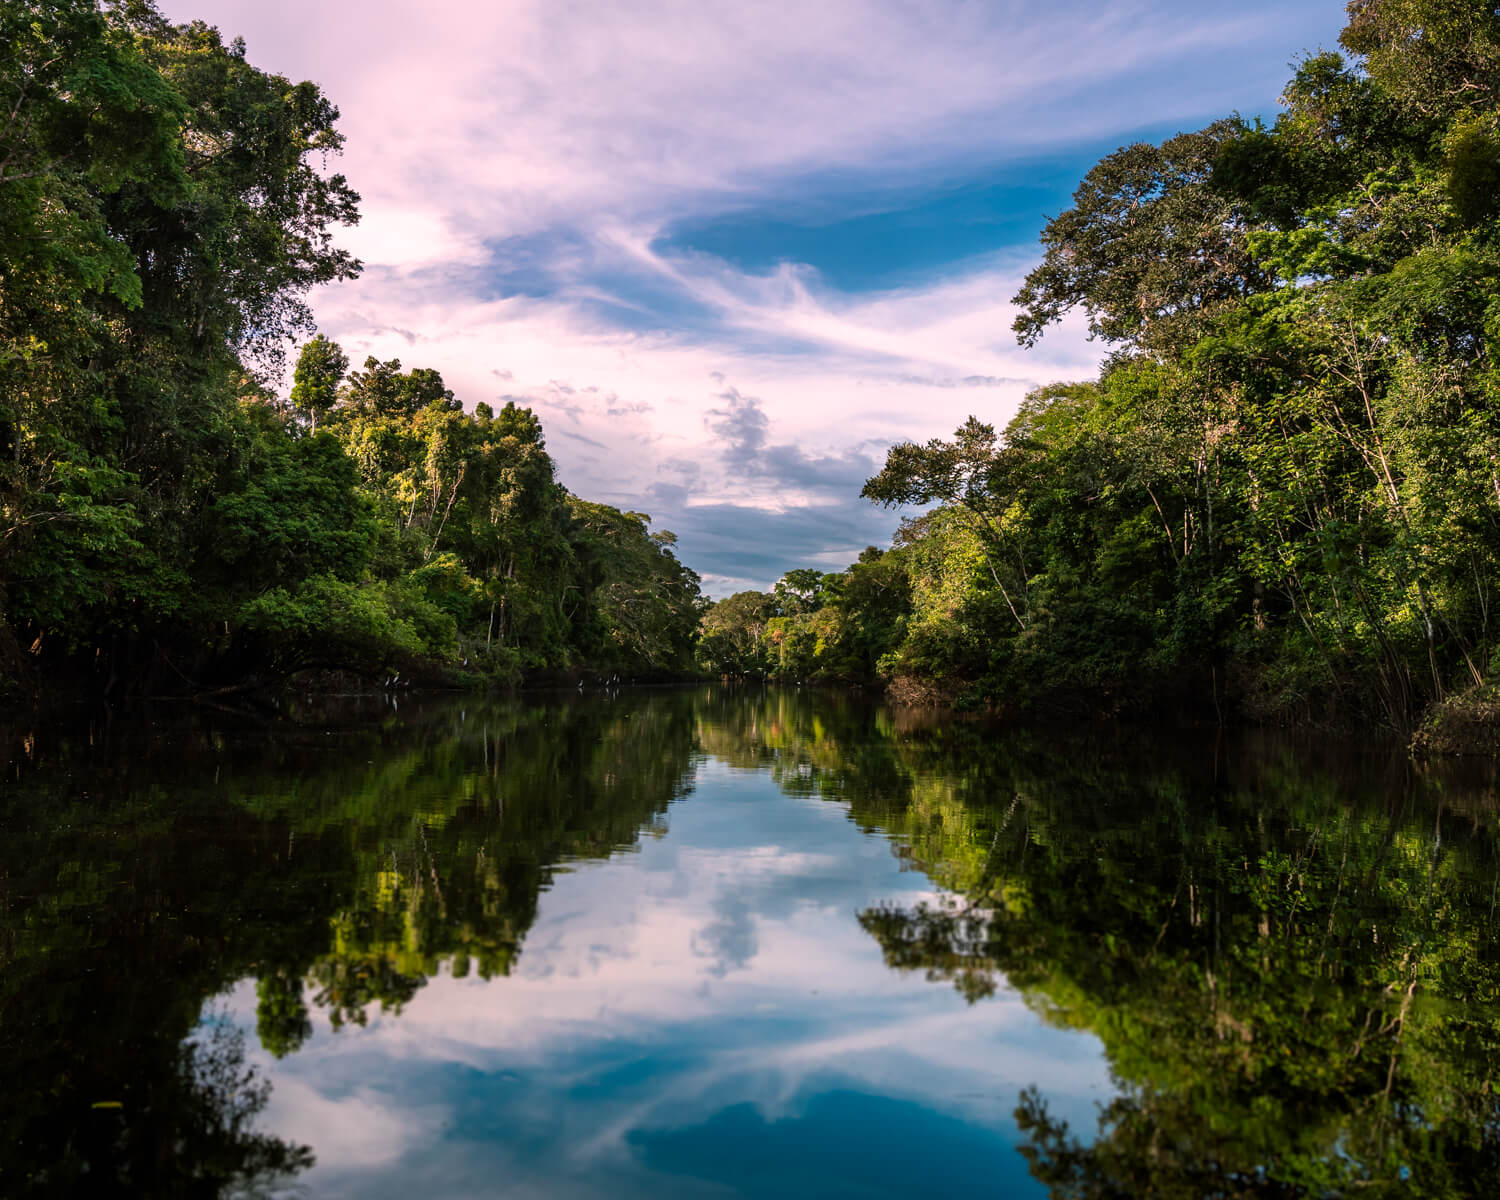 Pacaya Samiria National Reserve is the Jungle of mirrors